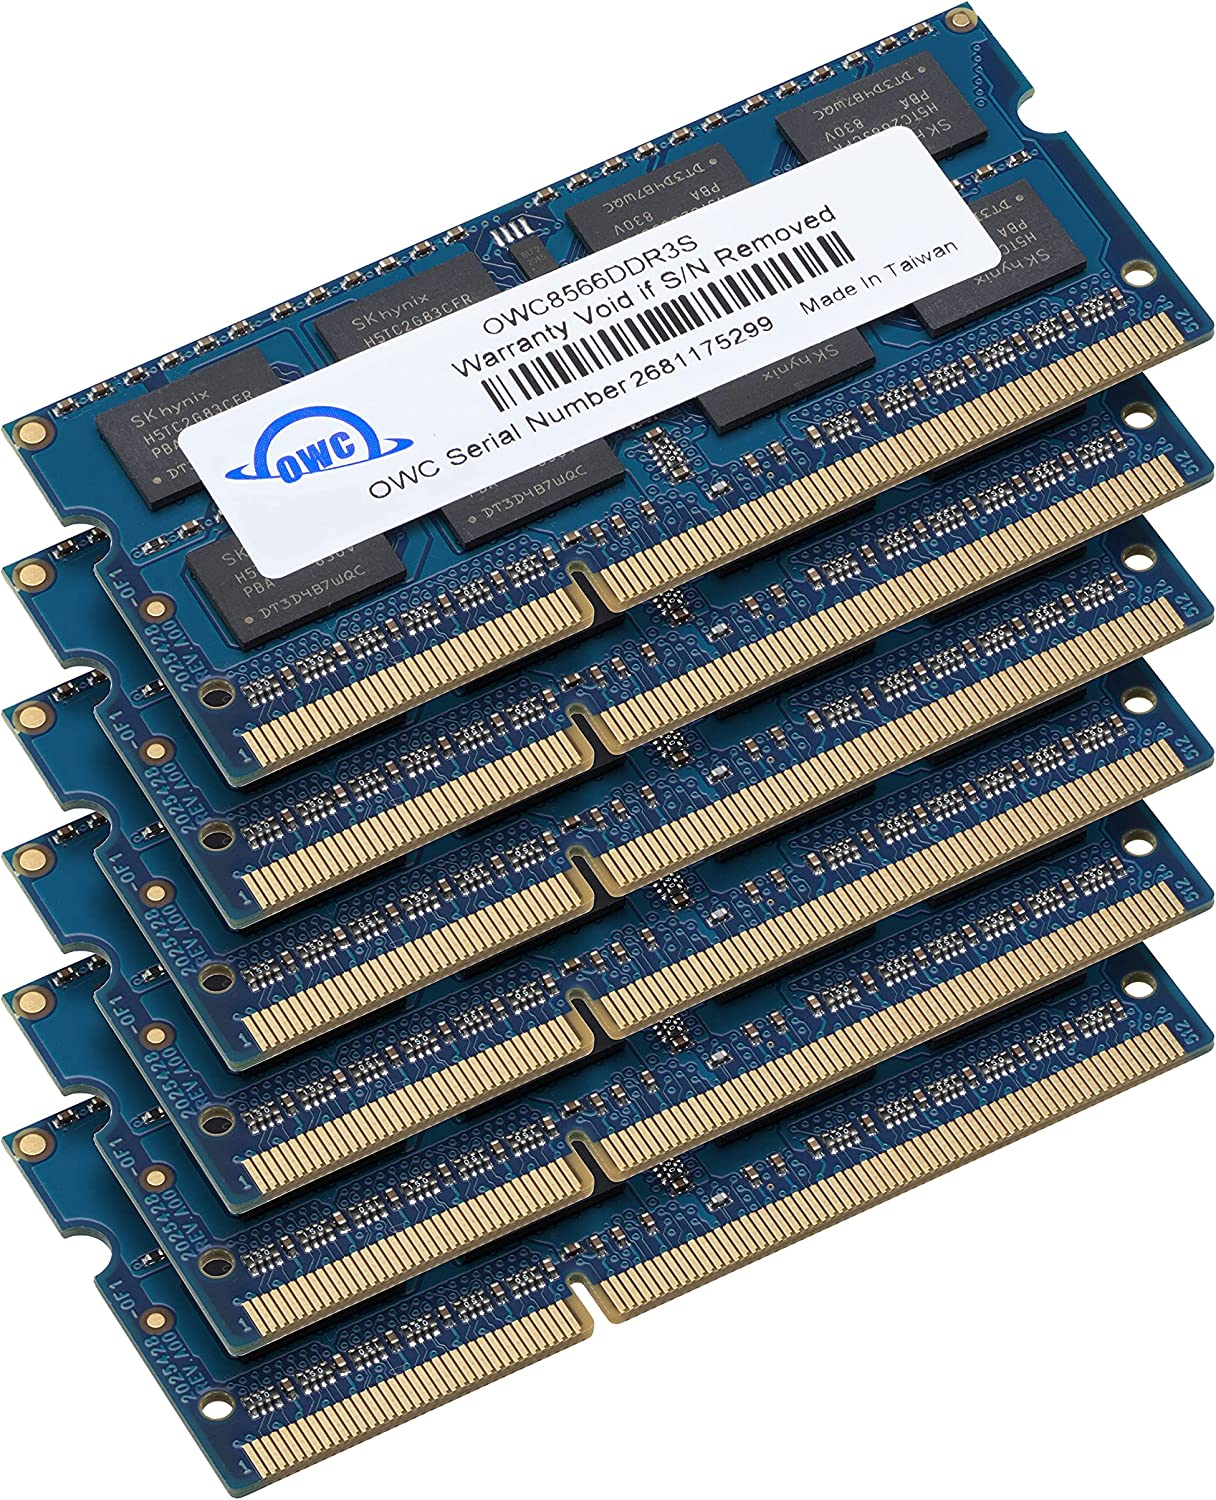 OWC 48.0 GB (6X 8GB) PC8500 DDR3 ECC 1066 MHz 240 pin DIMM Memory Upgrade Kit for 2009 Mac Pro and Xserve